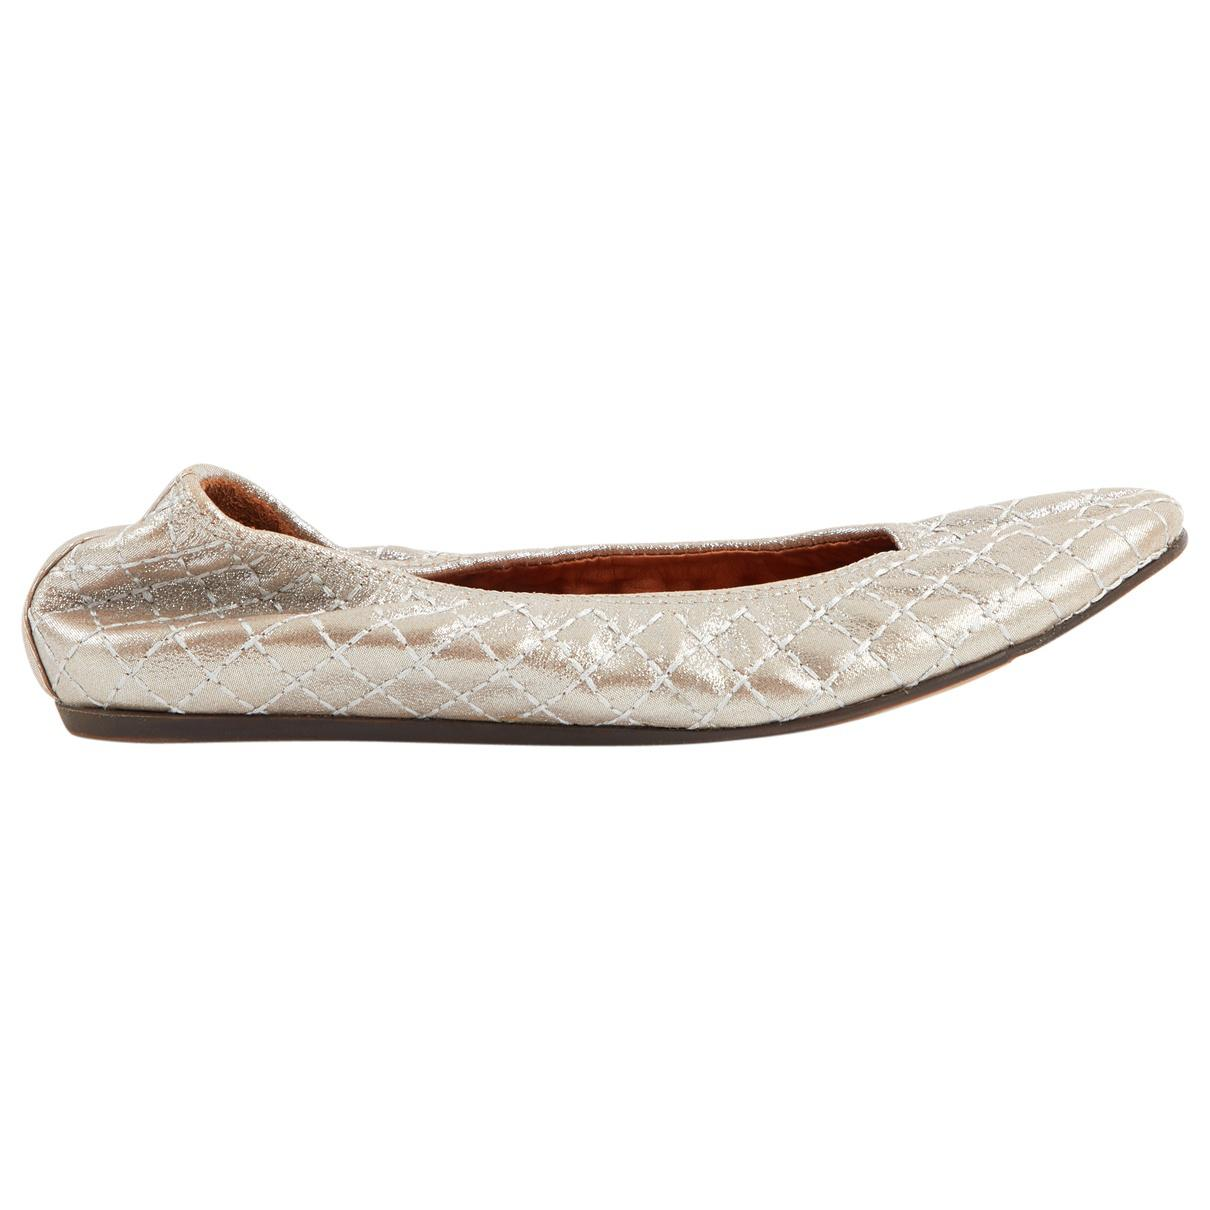 Pre-owned - Leather ballet flats Lanvin Free Shipping Get To Buy Online Shop Best Choice Outlet Best Wholesale Cheap Store 88VVyb5Hmu